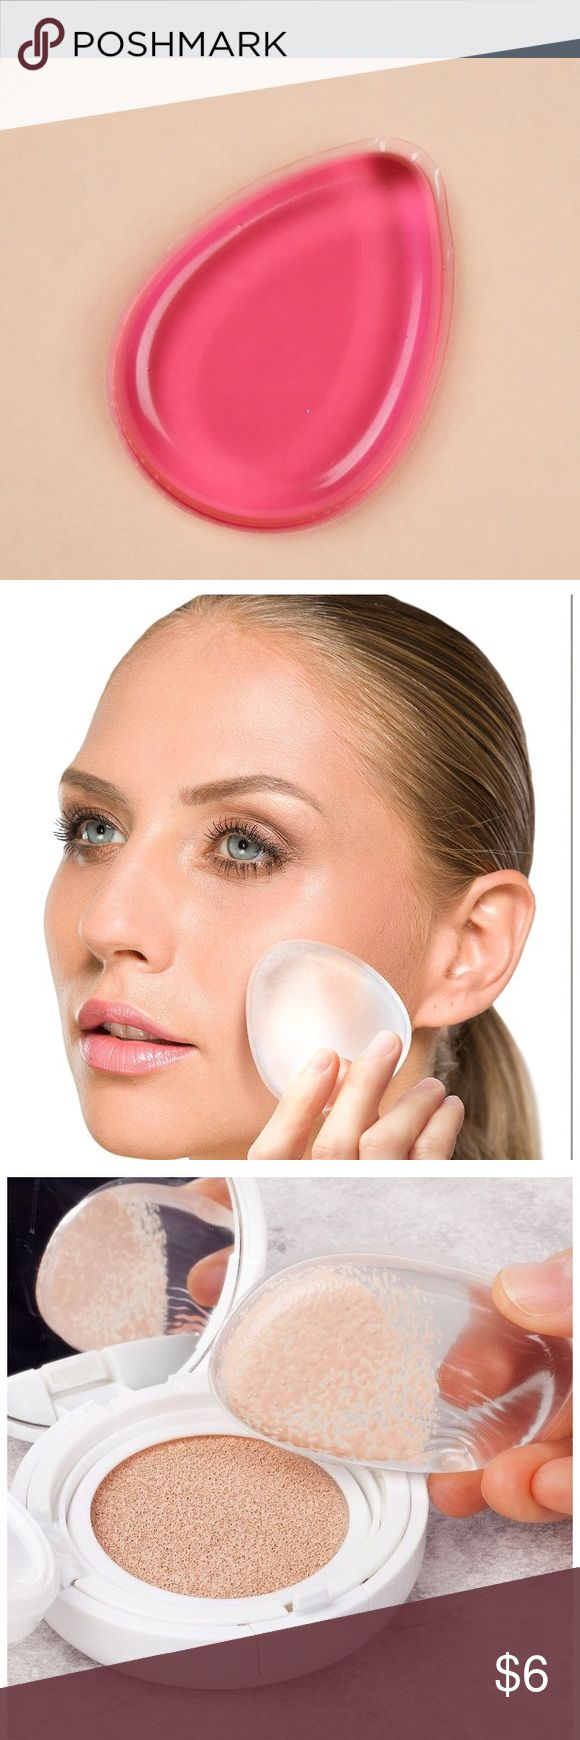 Silicone Makeup Brushes: 1000+ Ideas About Makeup Sponge On Pinterest